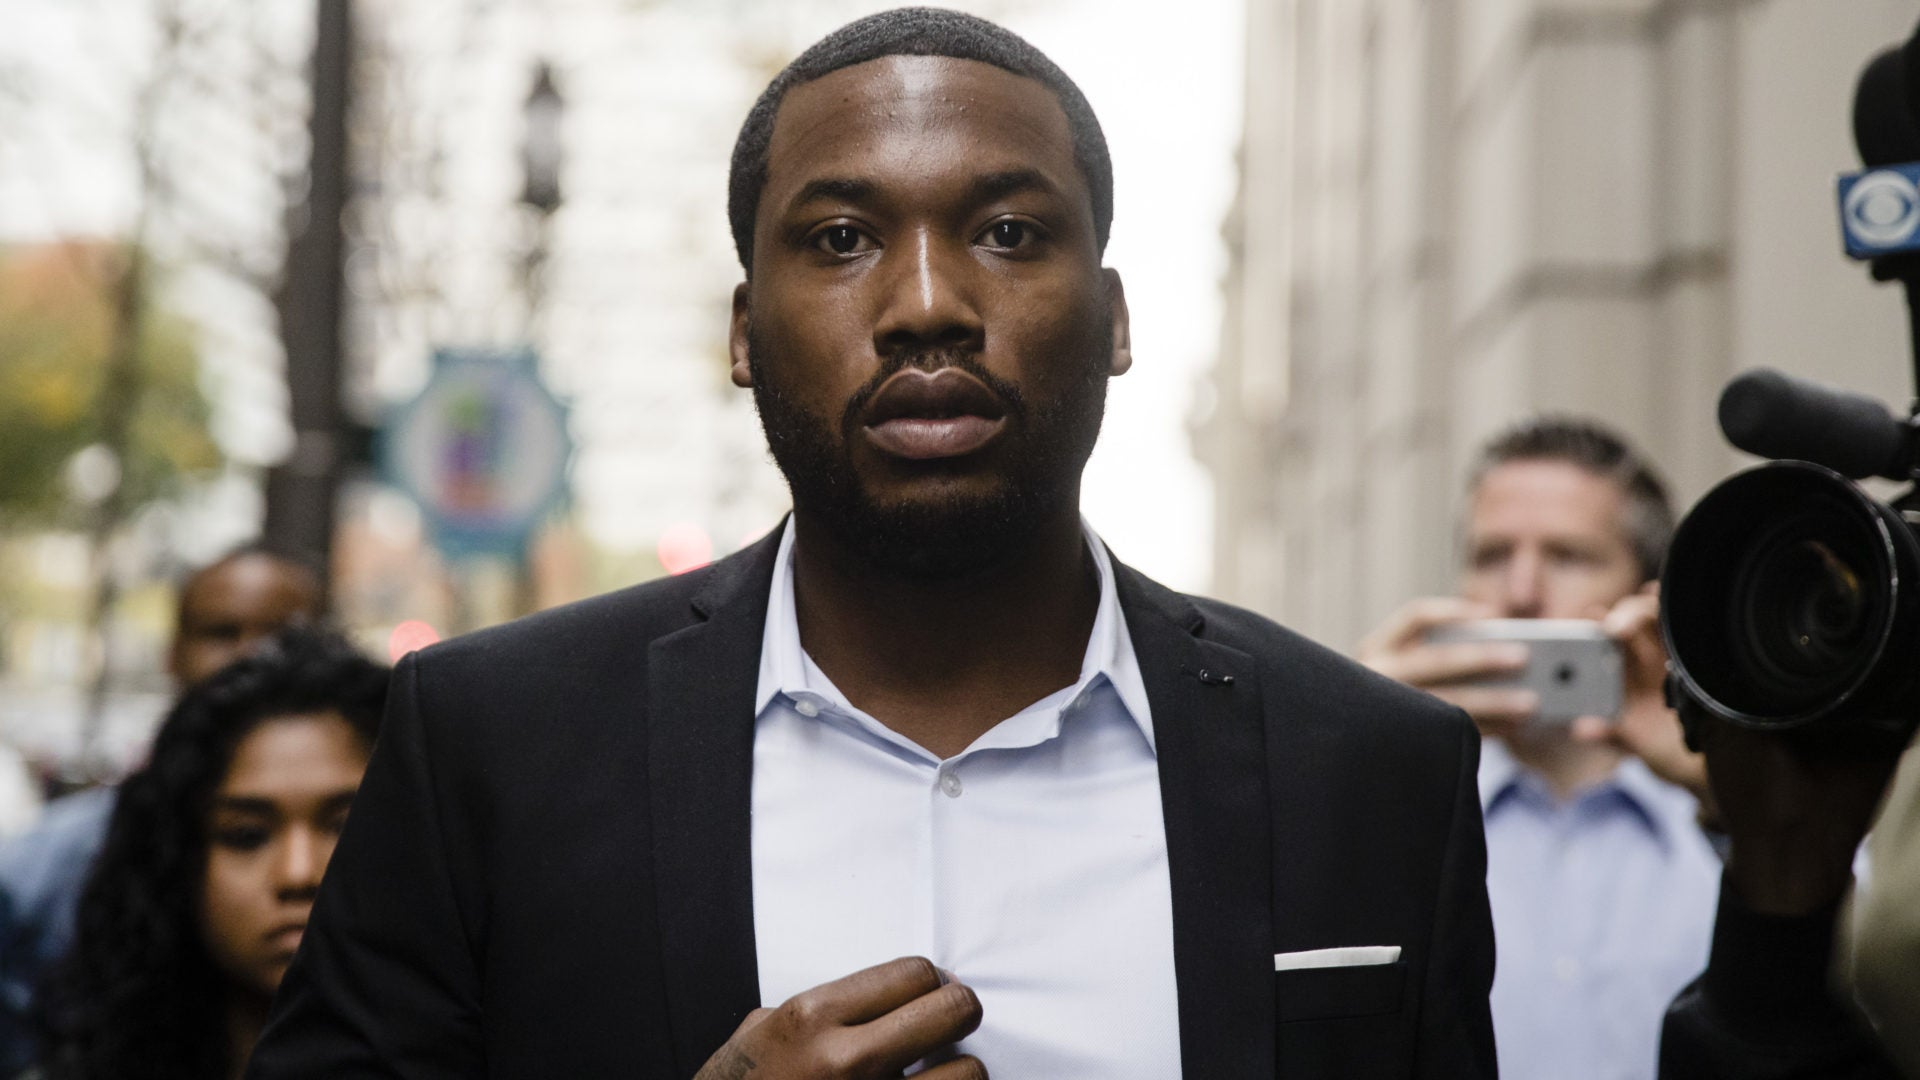 Meek Mill's Grandmother's House Vandalized With Racial Slurs